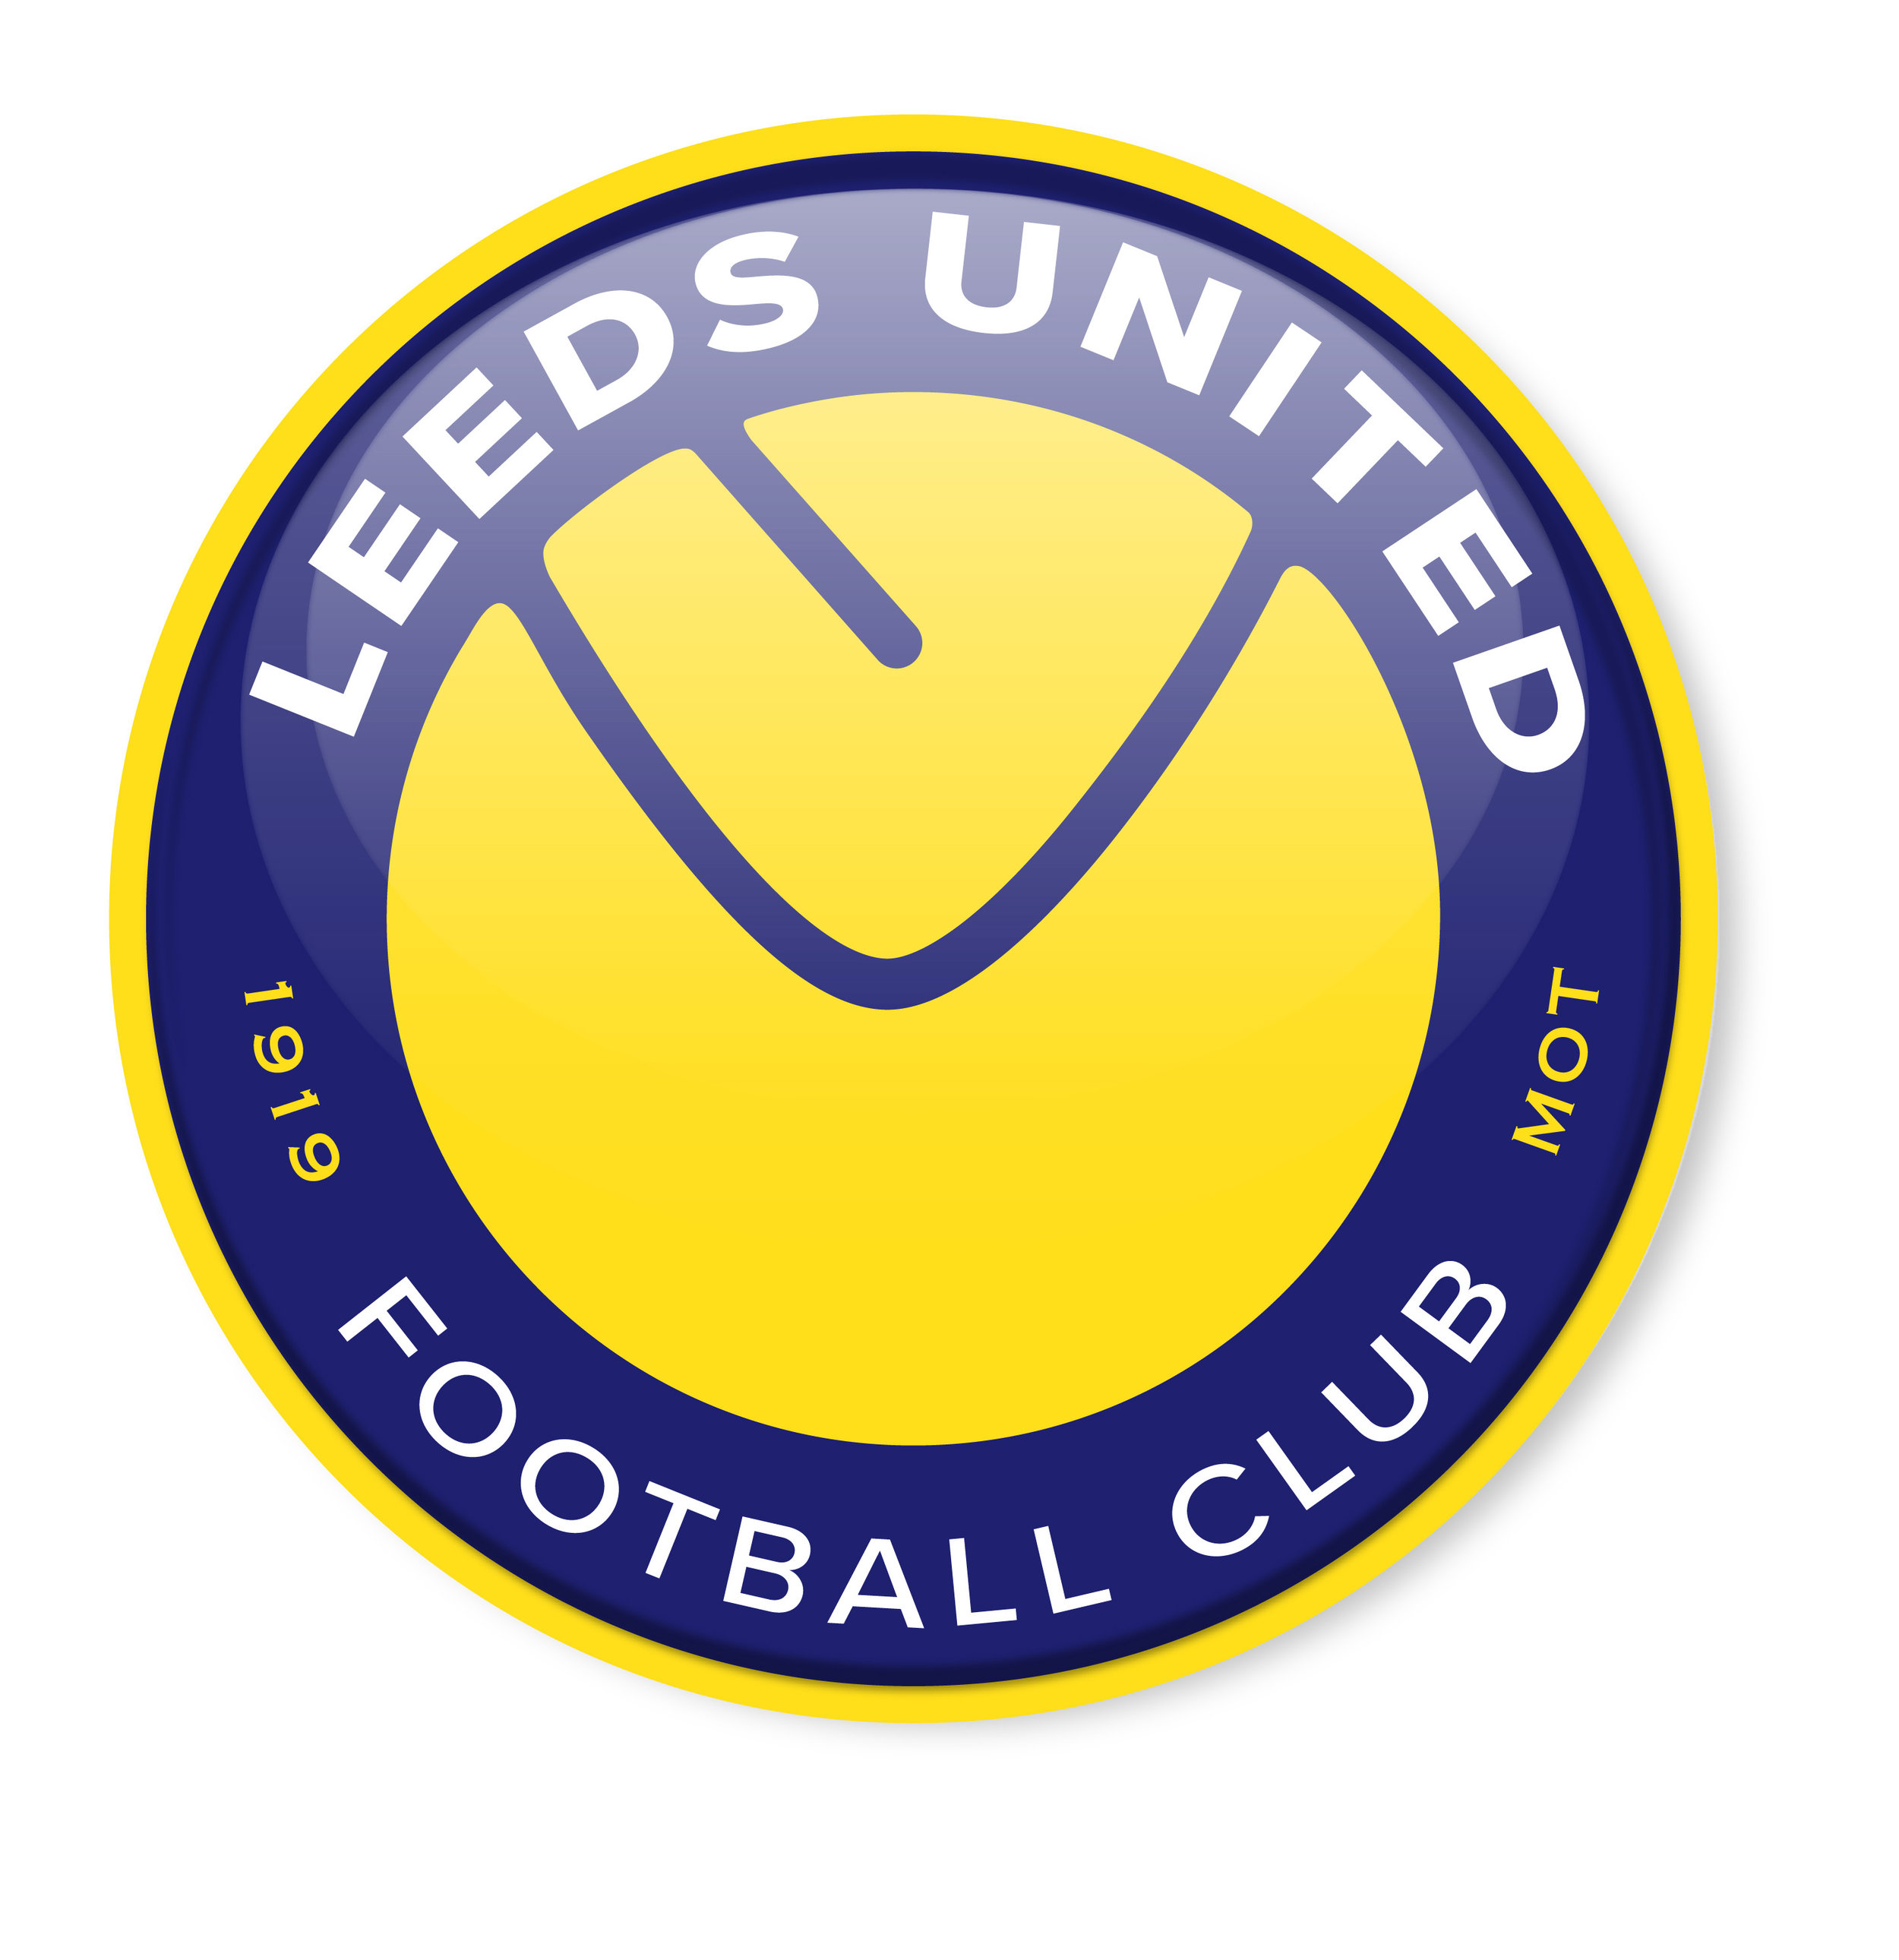 LUFC_©Chris_Bradley3D-crop.jpg